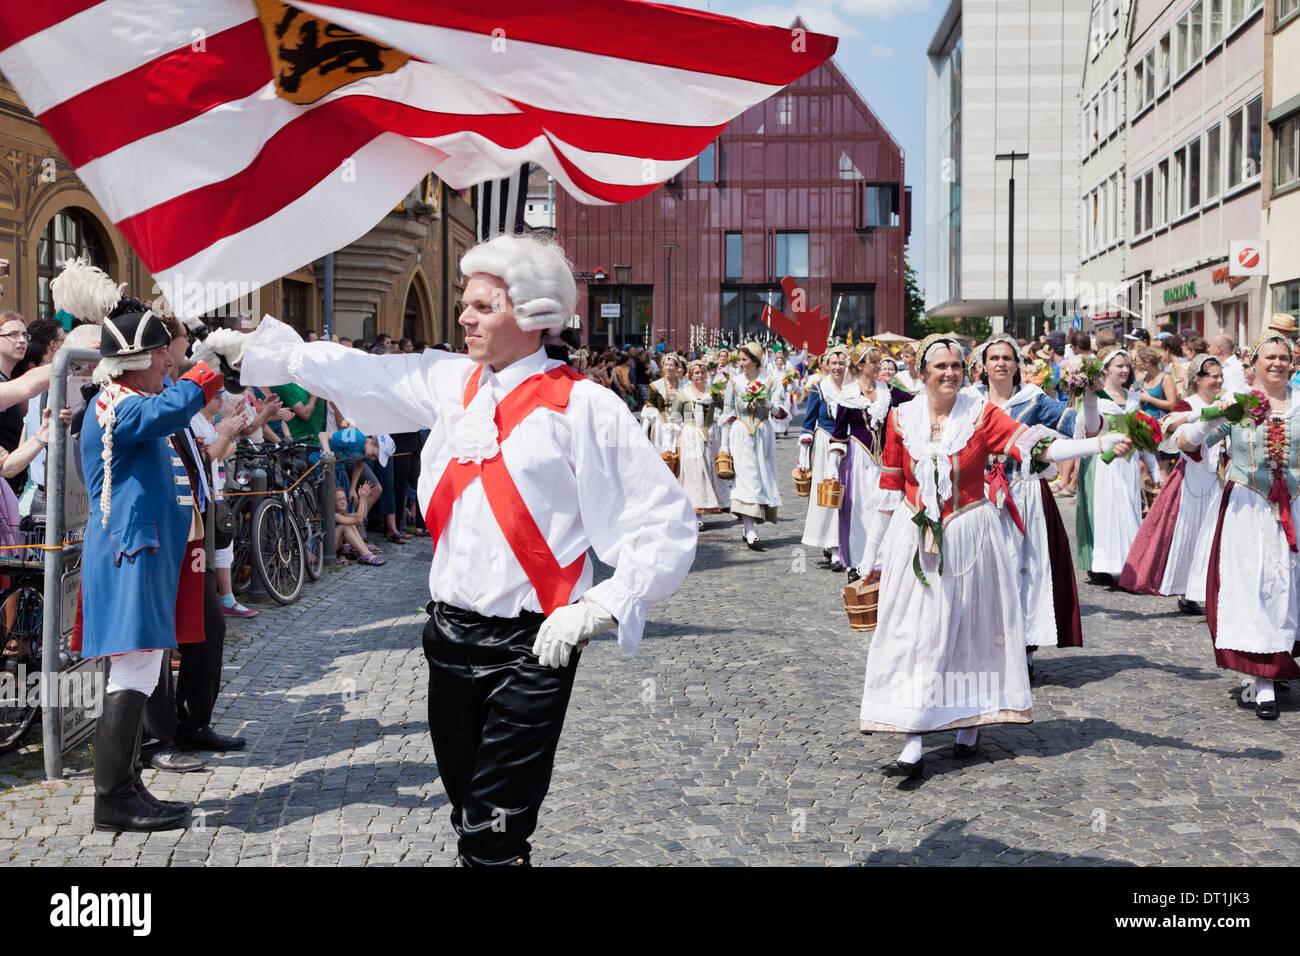 Flag thrower and fisher women in a historical parade at the market place, Fischerstechen, Ulm, Baden Wurttemberg, Germany - Stock Image